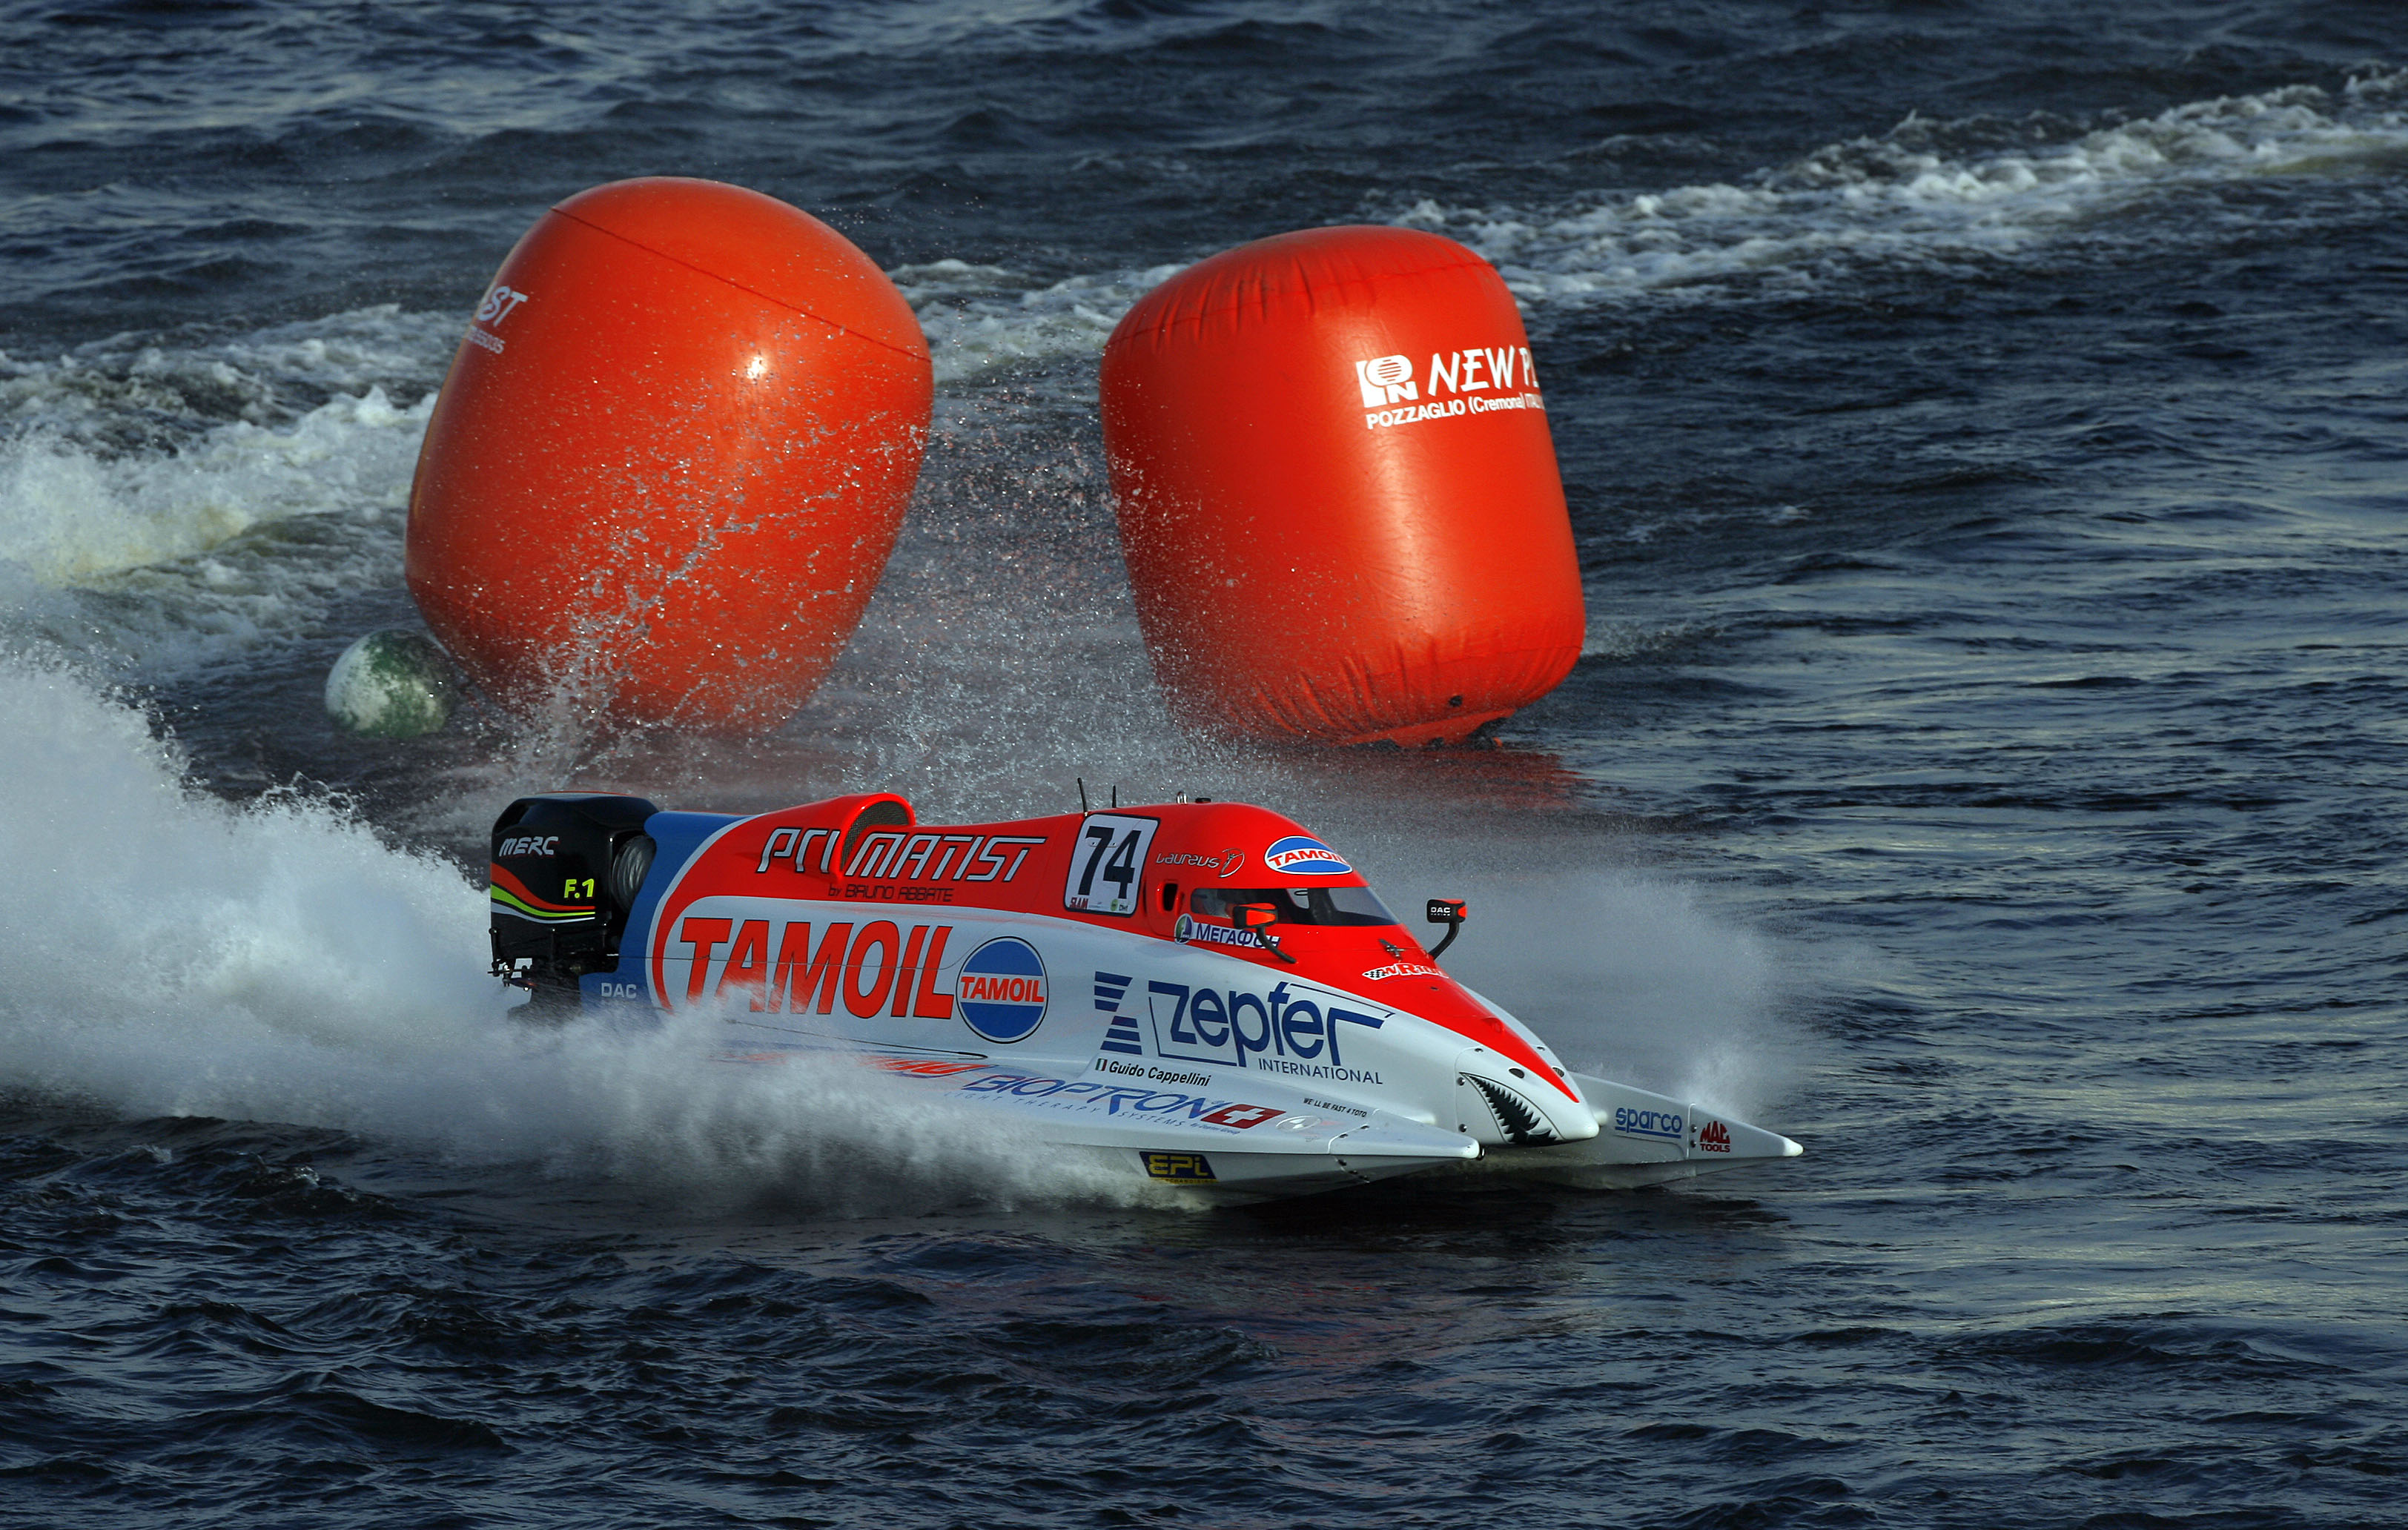 GP OF ST PETERSBURG-130608-PL-Guido Cappellini of Italy of the Tamoil F1 powerboat team pictured during the practice session on the Neva River in St Petersburg, Russia, venue of the UIM F1 powerboat Grand Prix, the 4th leg of the world championship series is staged on the Neva River on June 14, 2008. Picture by Paul Lakatos/Idea Marketing.